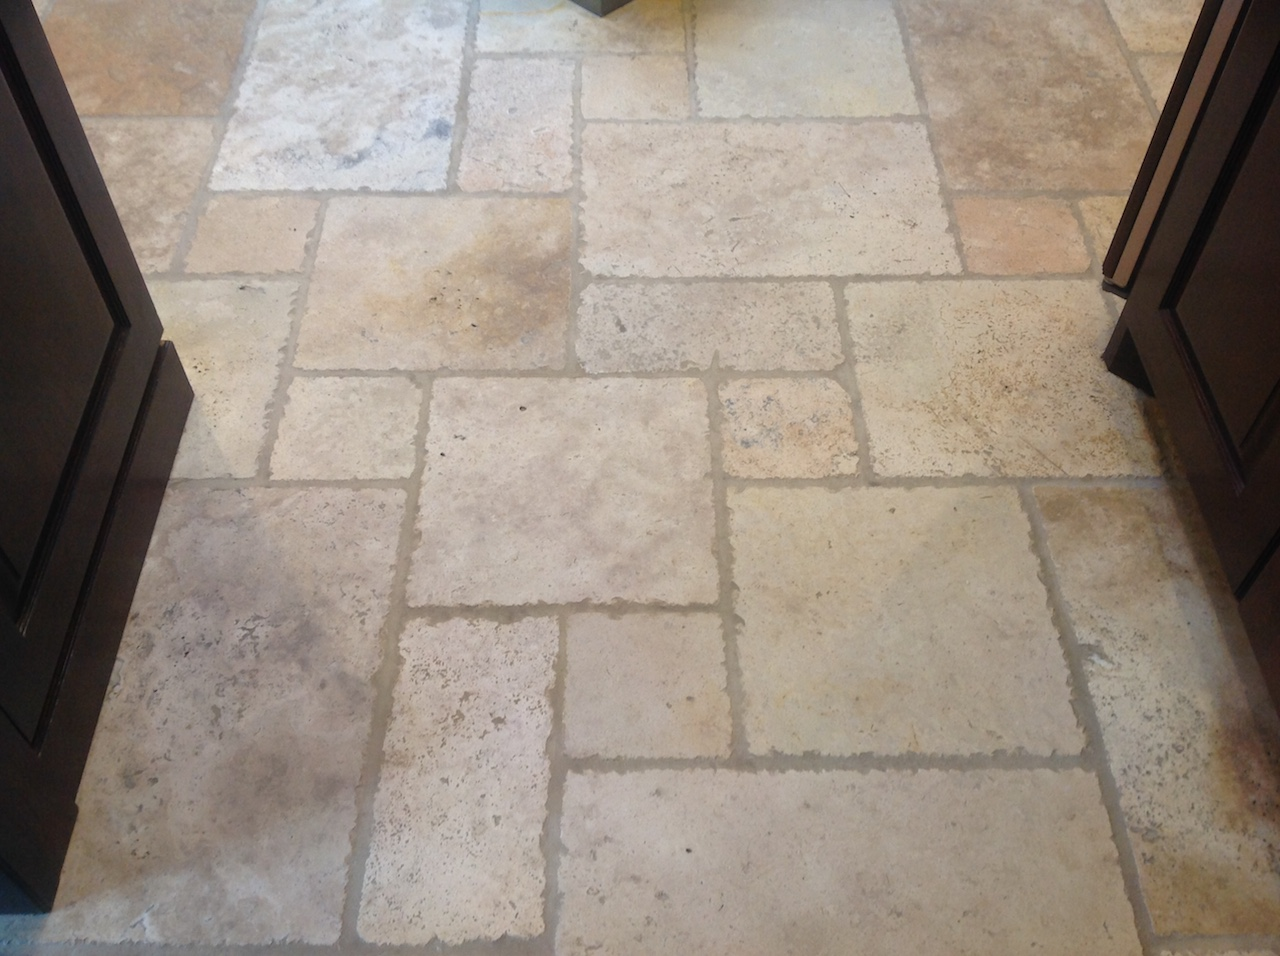 After cleaning the travertine look great once again